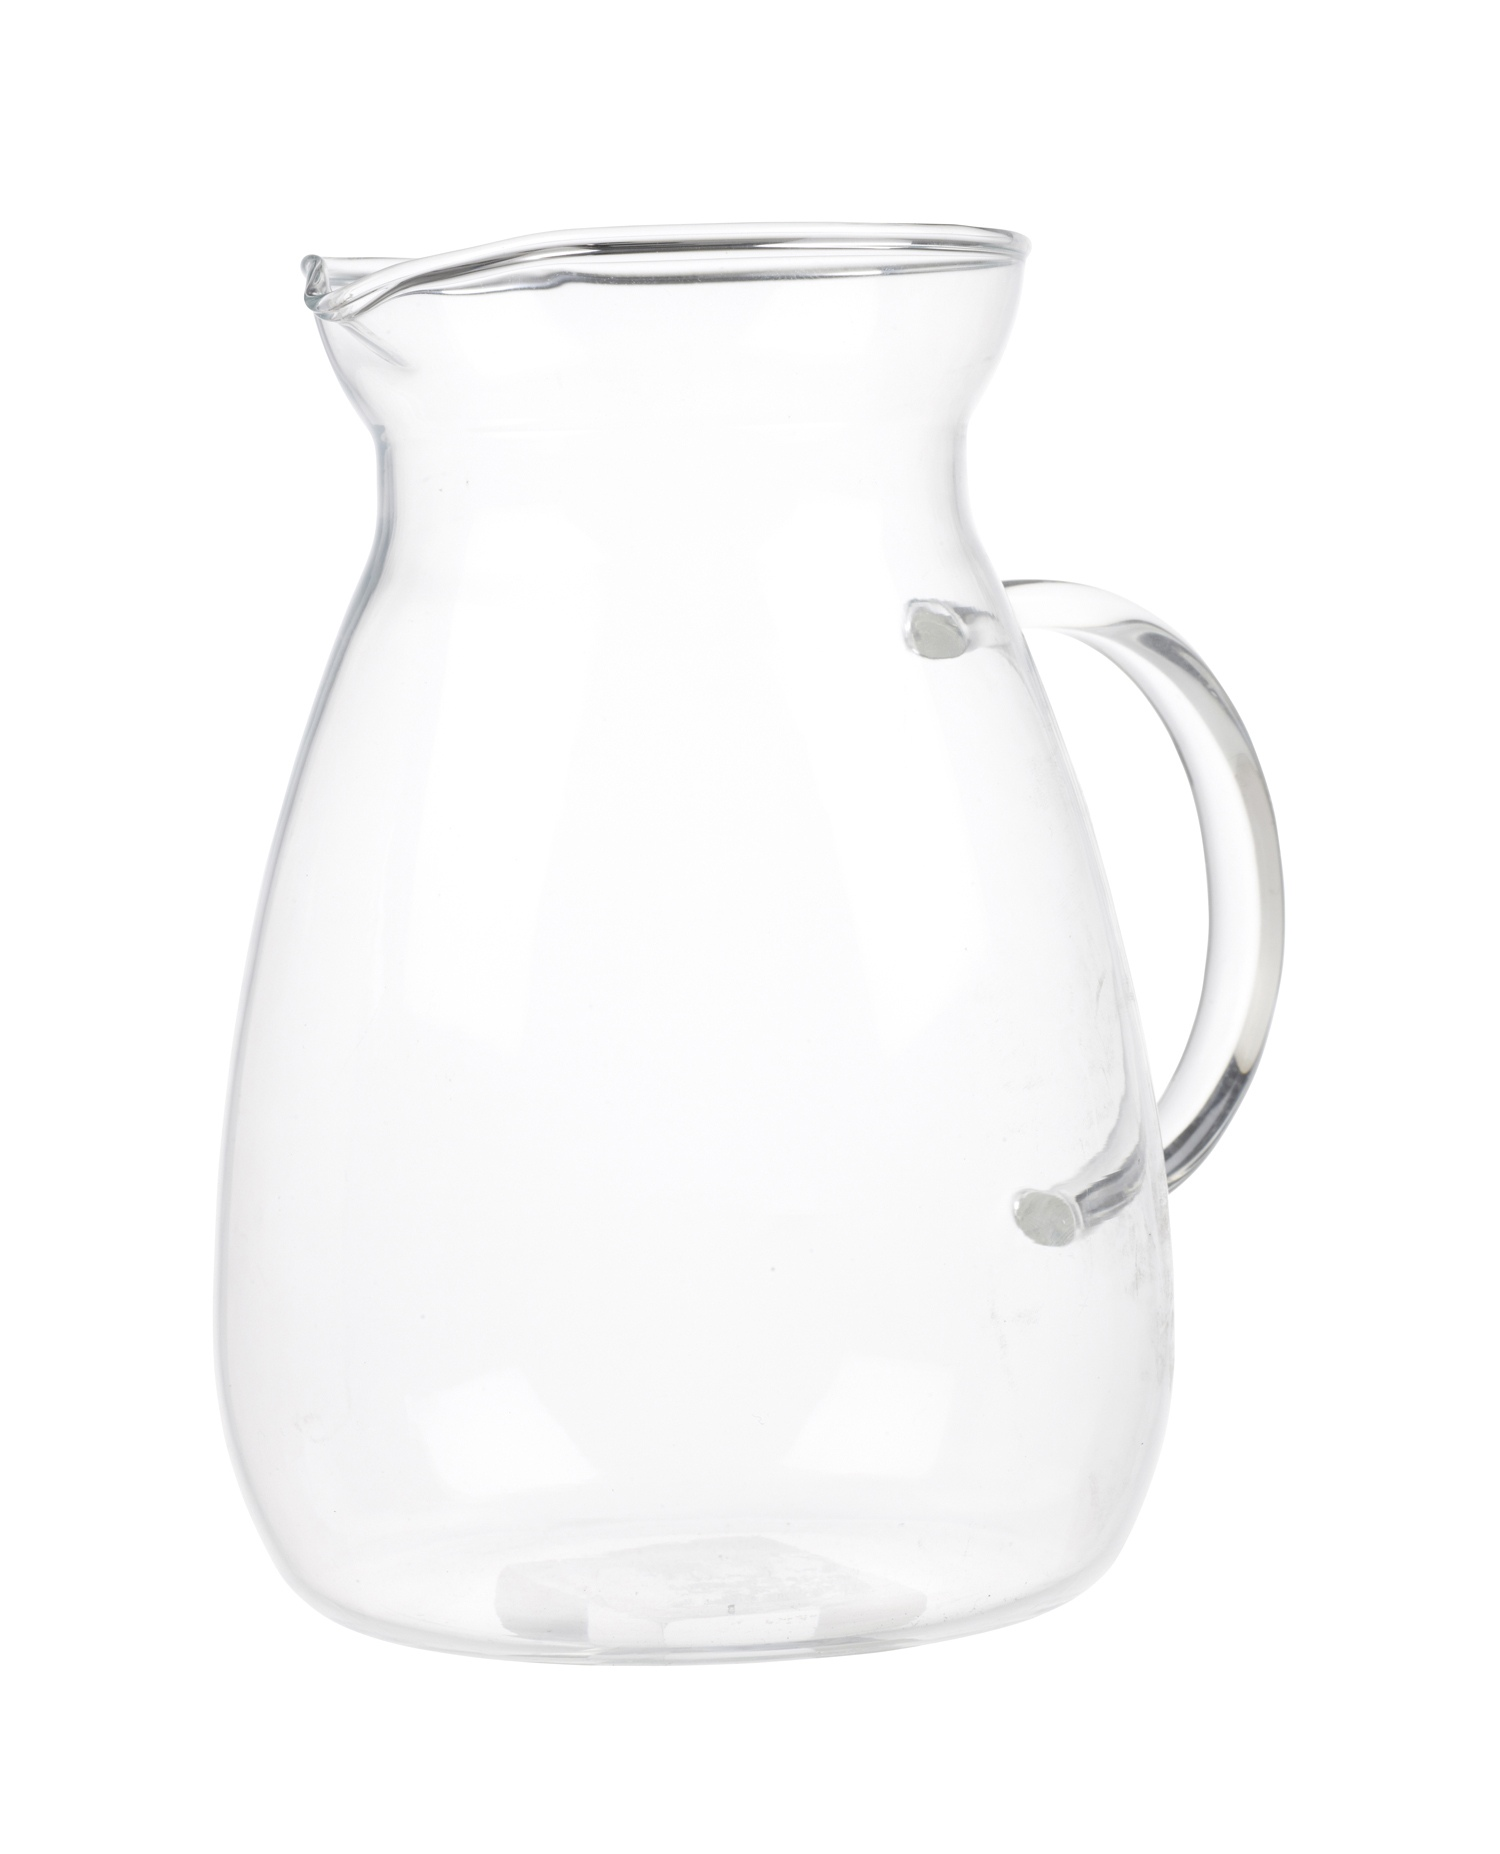 Termisil heat proof resistant jug borosilicate clear glass pitcher hot cold ebay - Heat proof glass pitcher ...